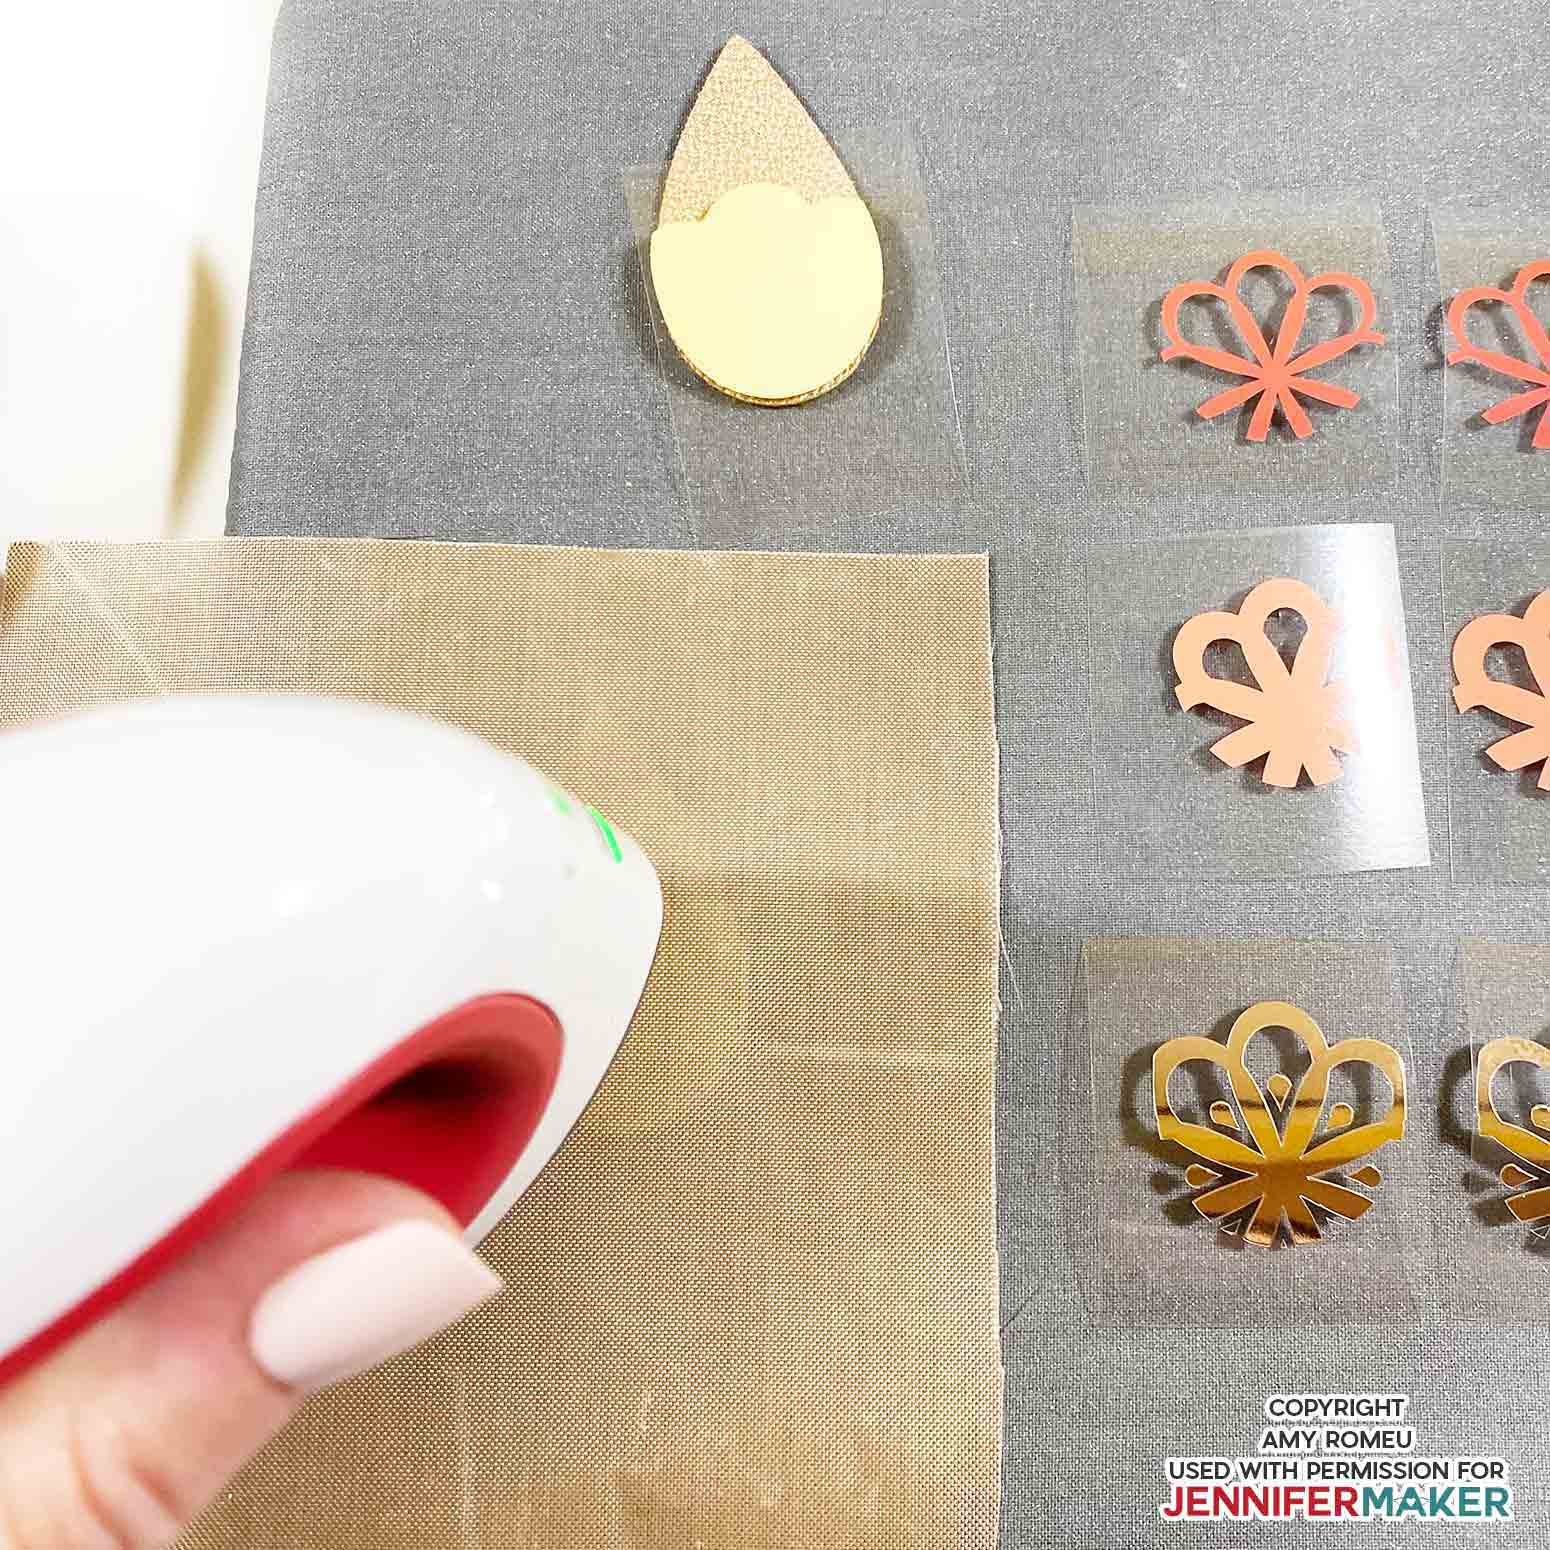 heat pressing vinyl earring shape layers onto faux leather